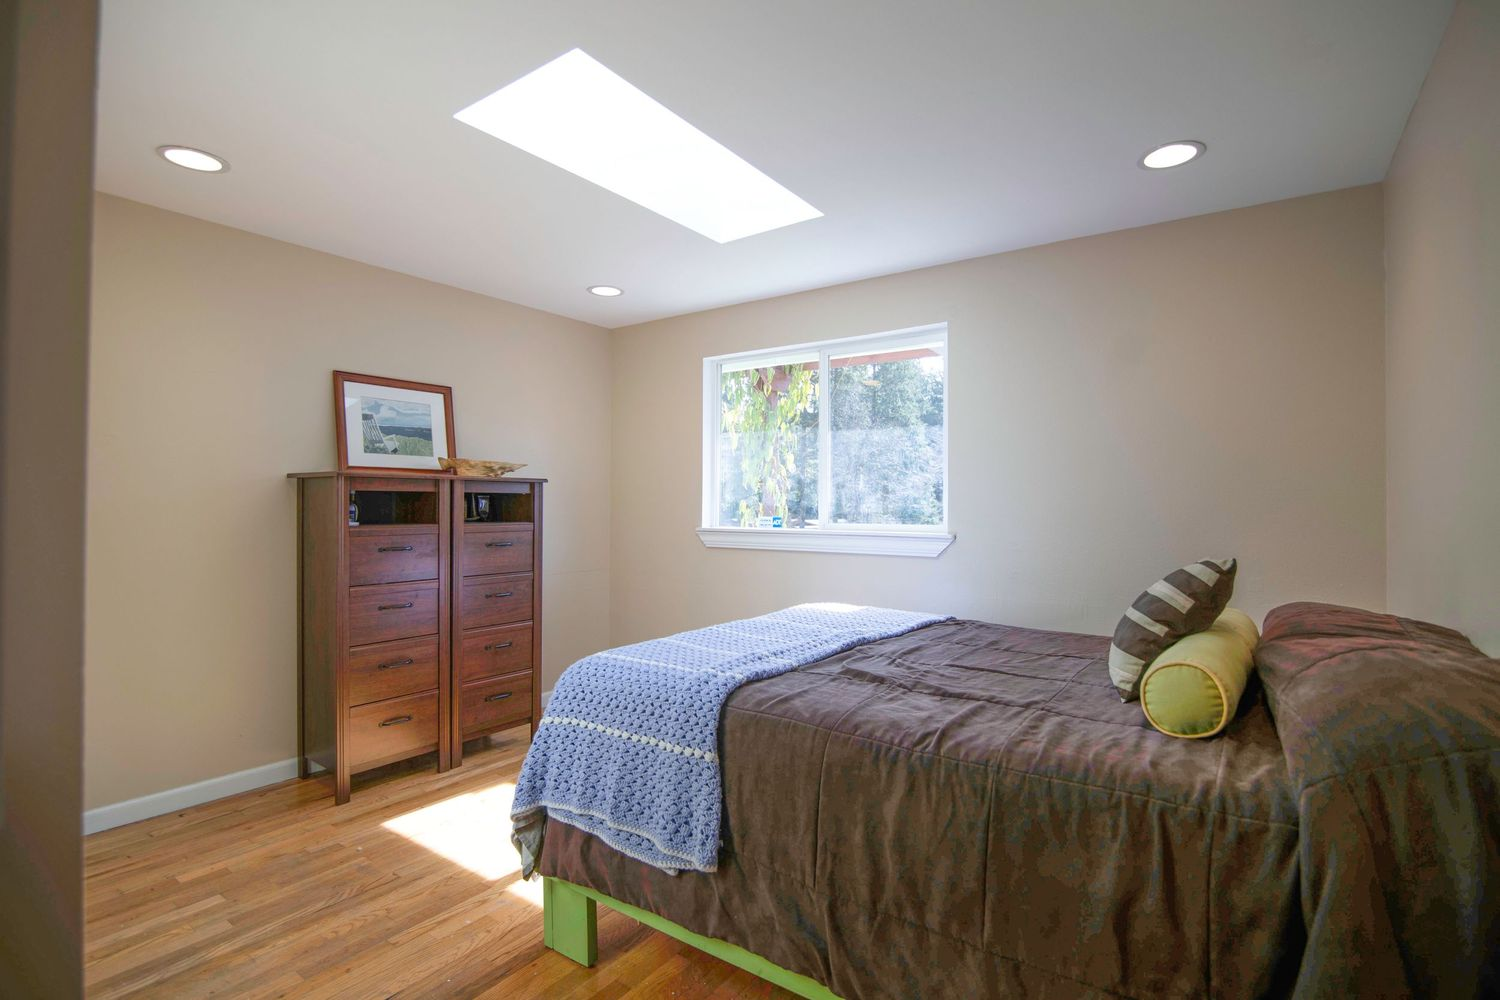 inside of a bedroom with a bright window